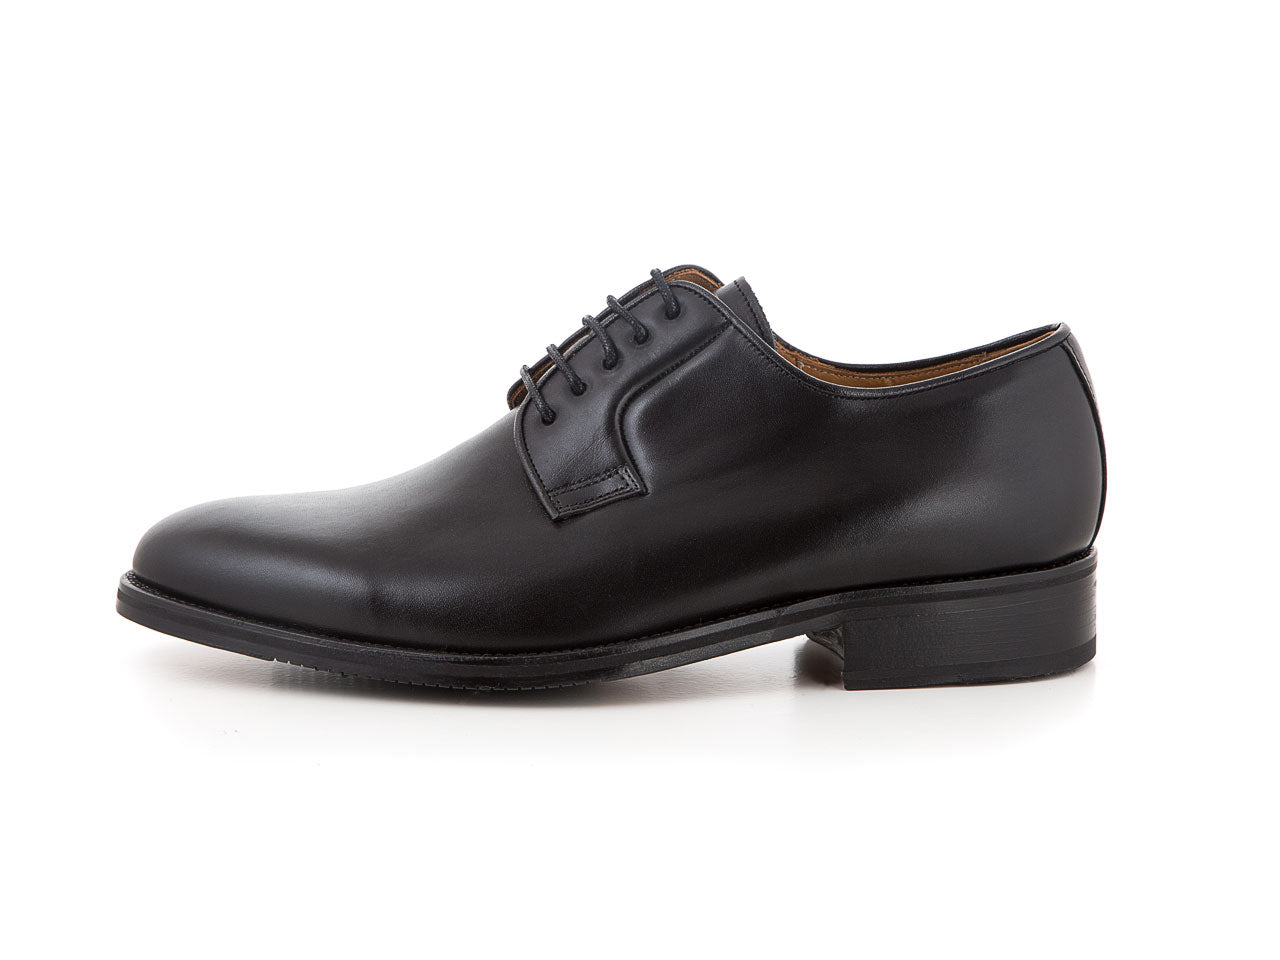 Classic handmade leather shoes all black for suits | camino71